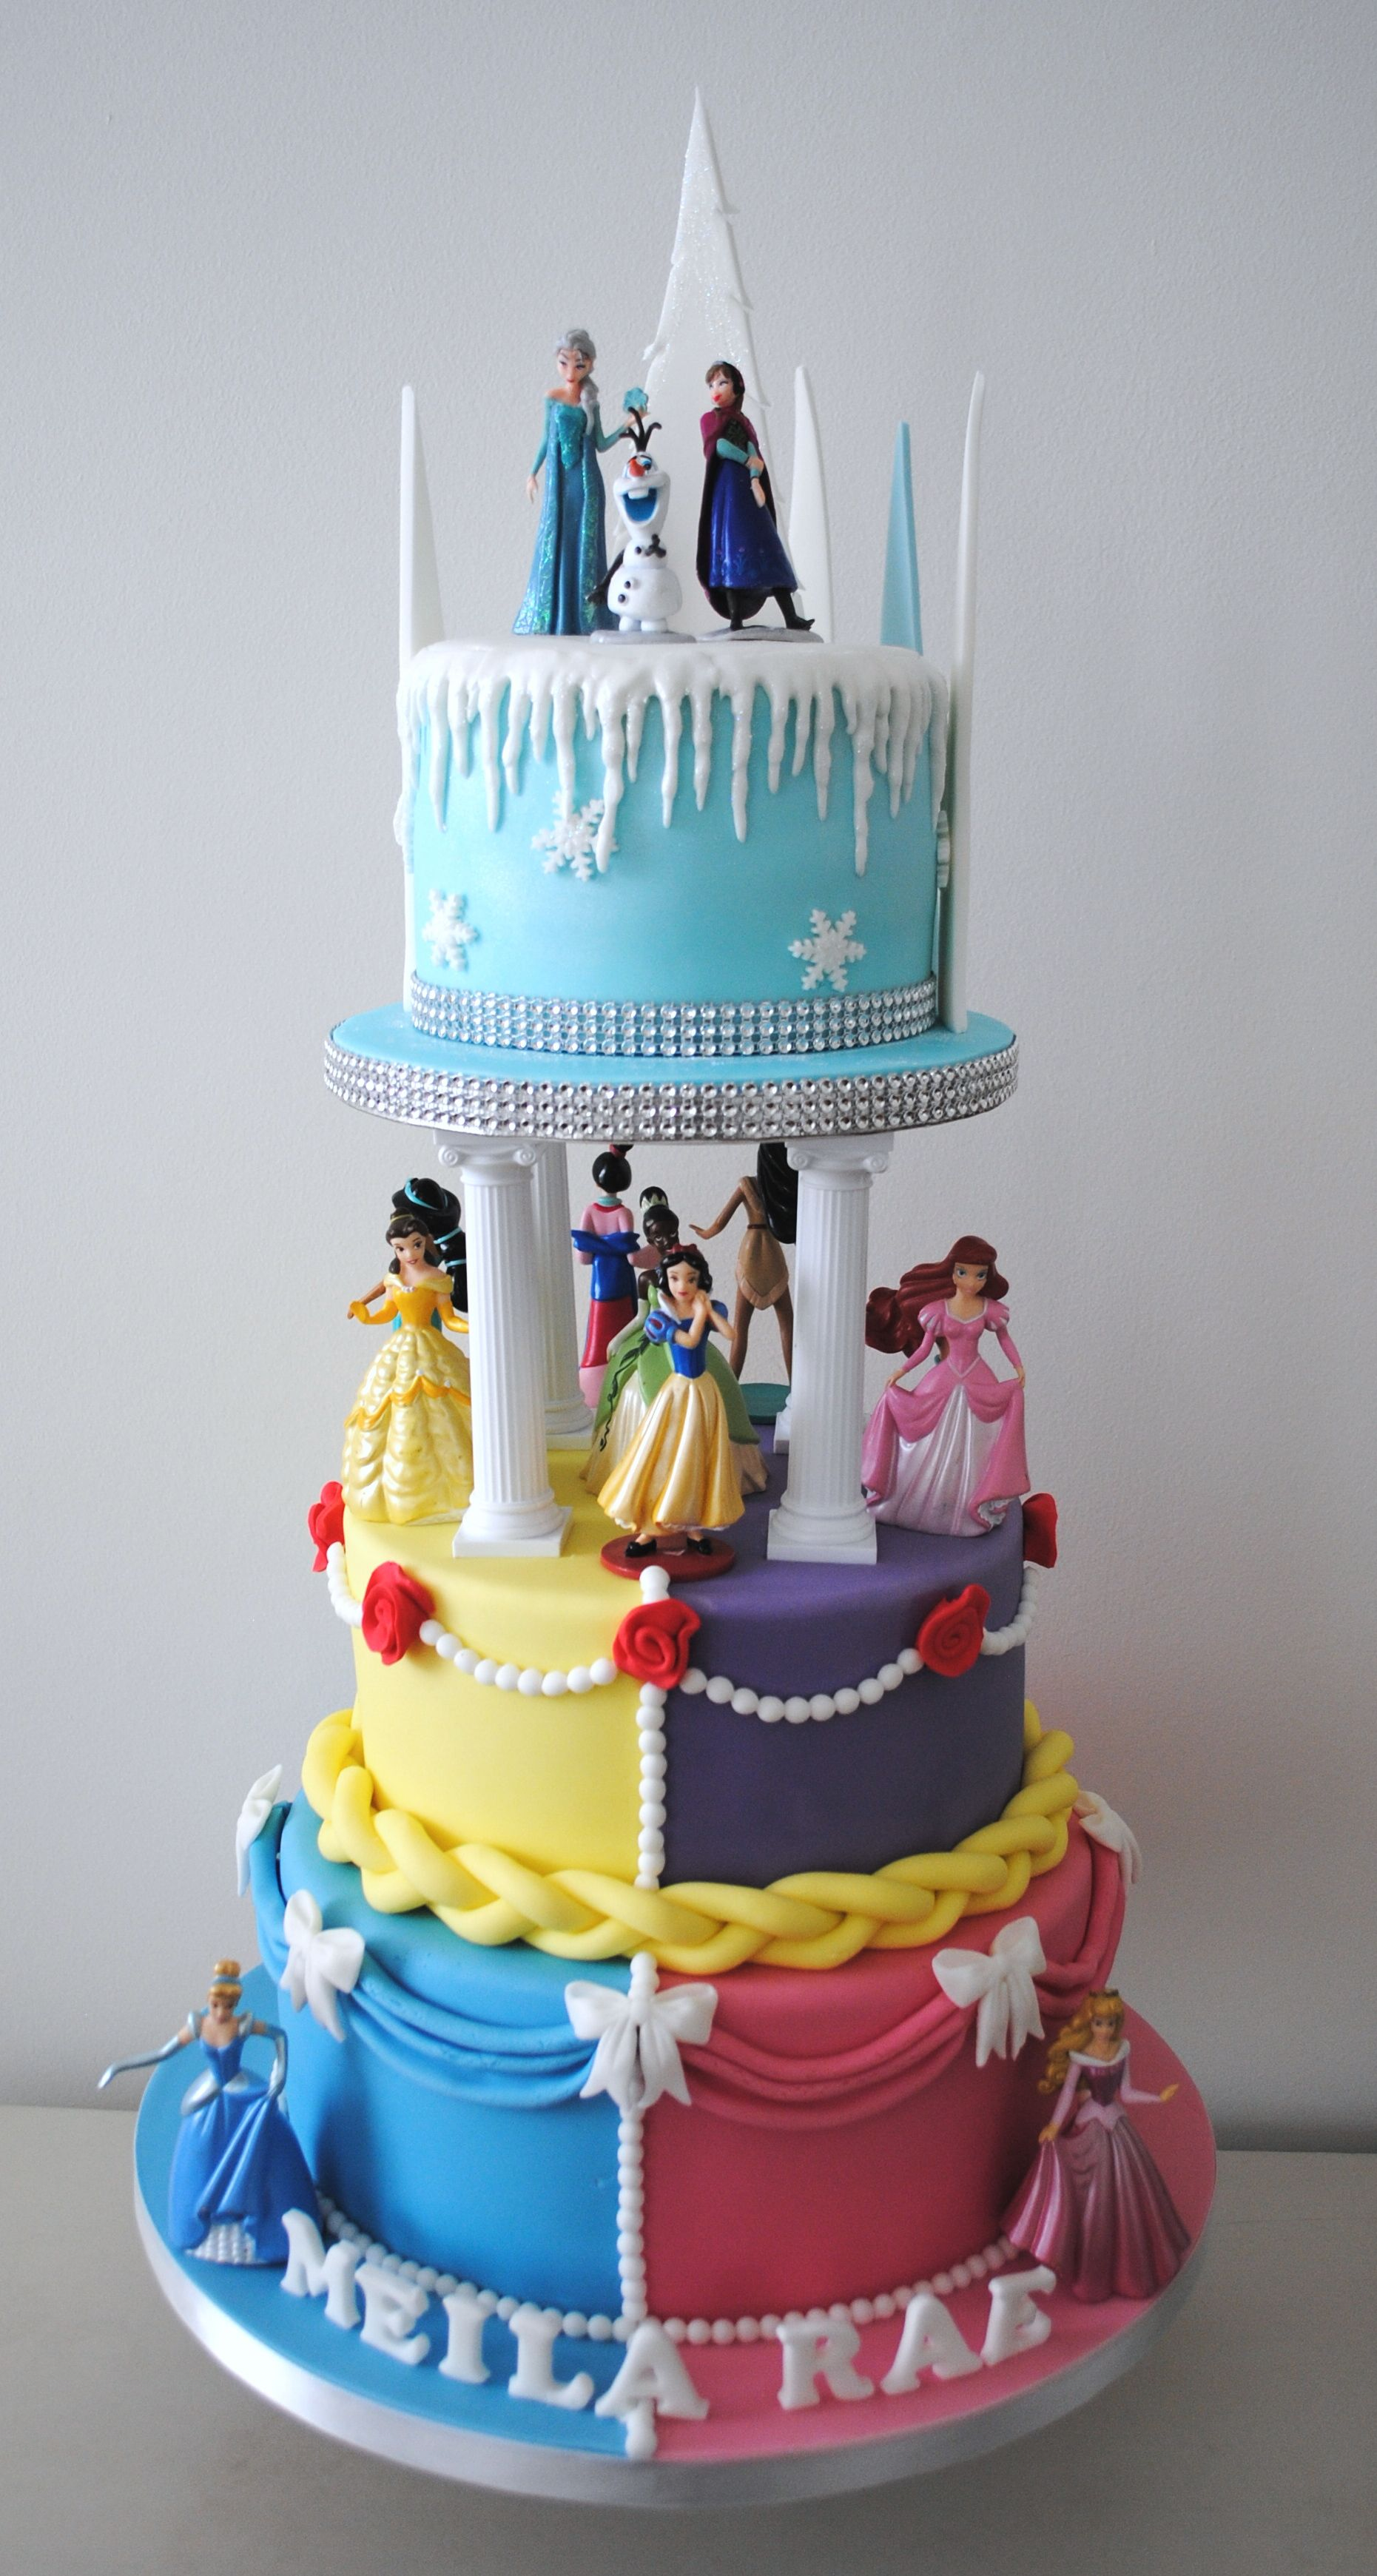 Disney princess 3 tiered birthday cake Birthday Pinterest